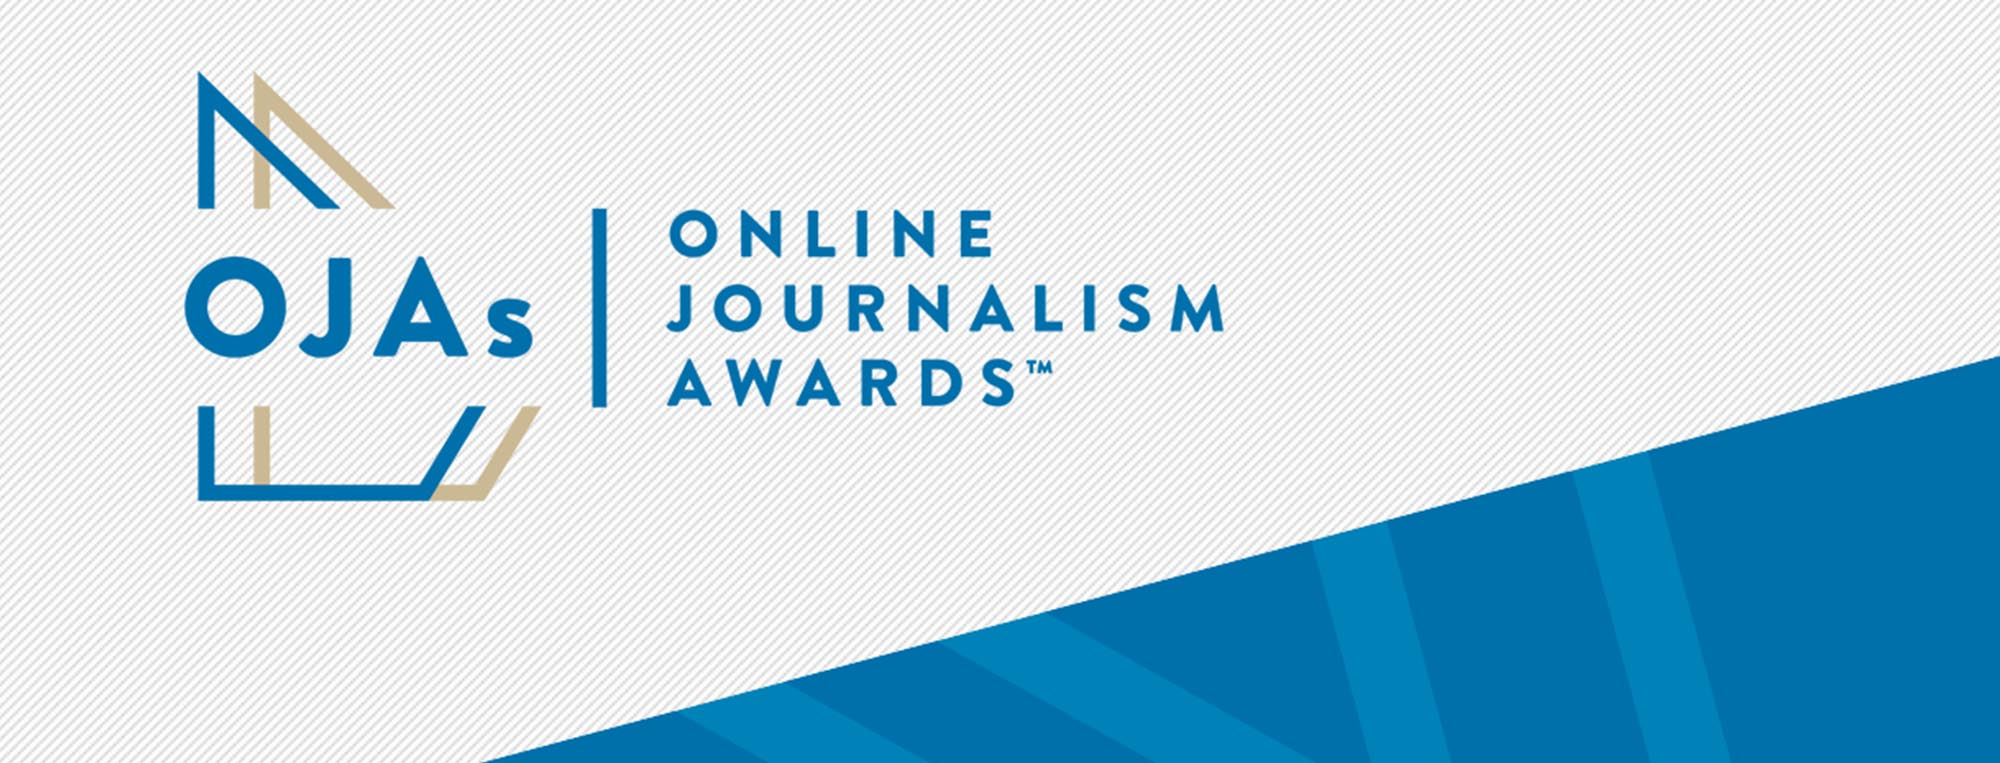 Online Journalism Awards: Visual identity re-brand